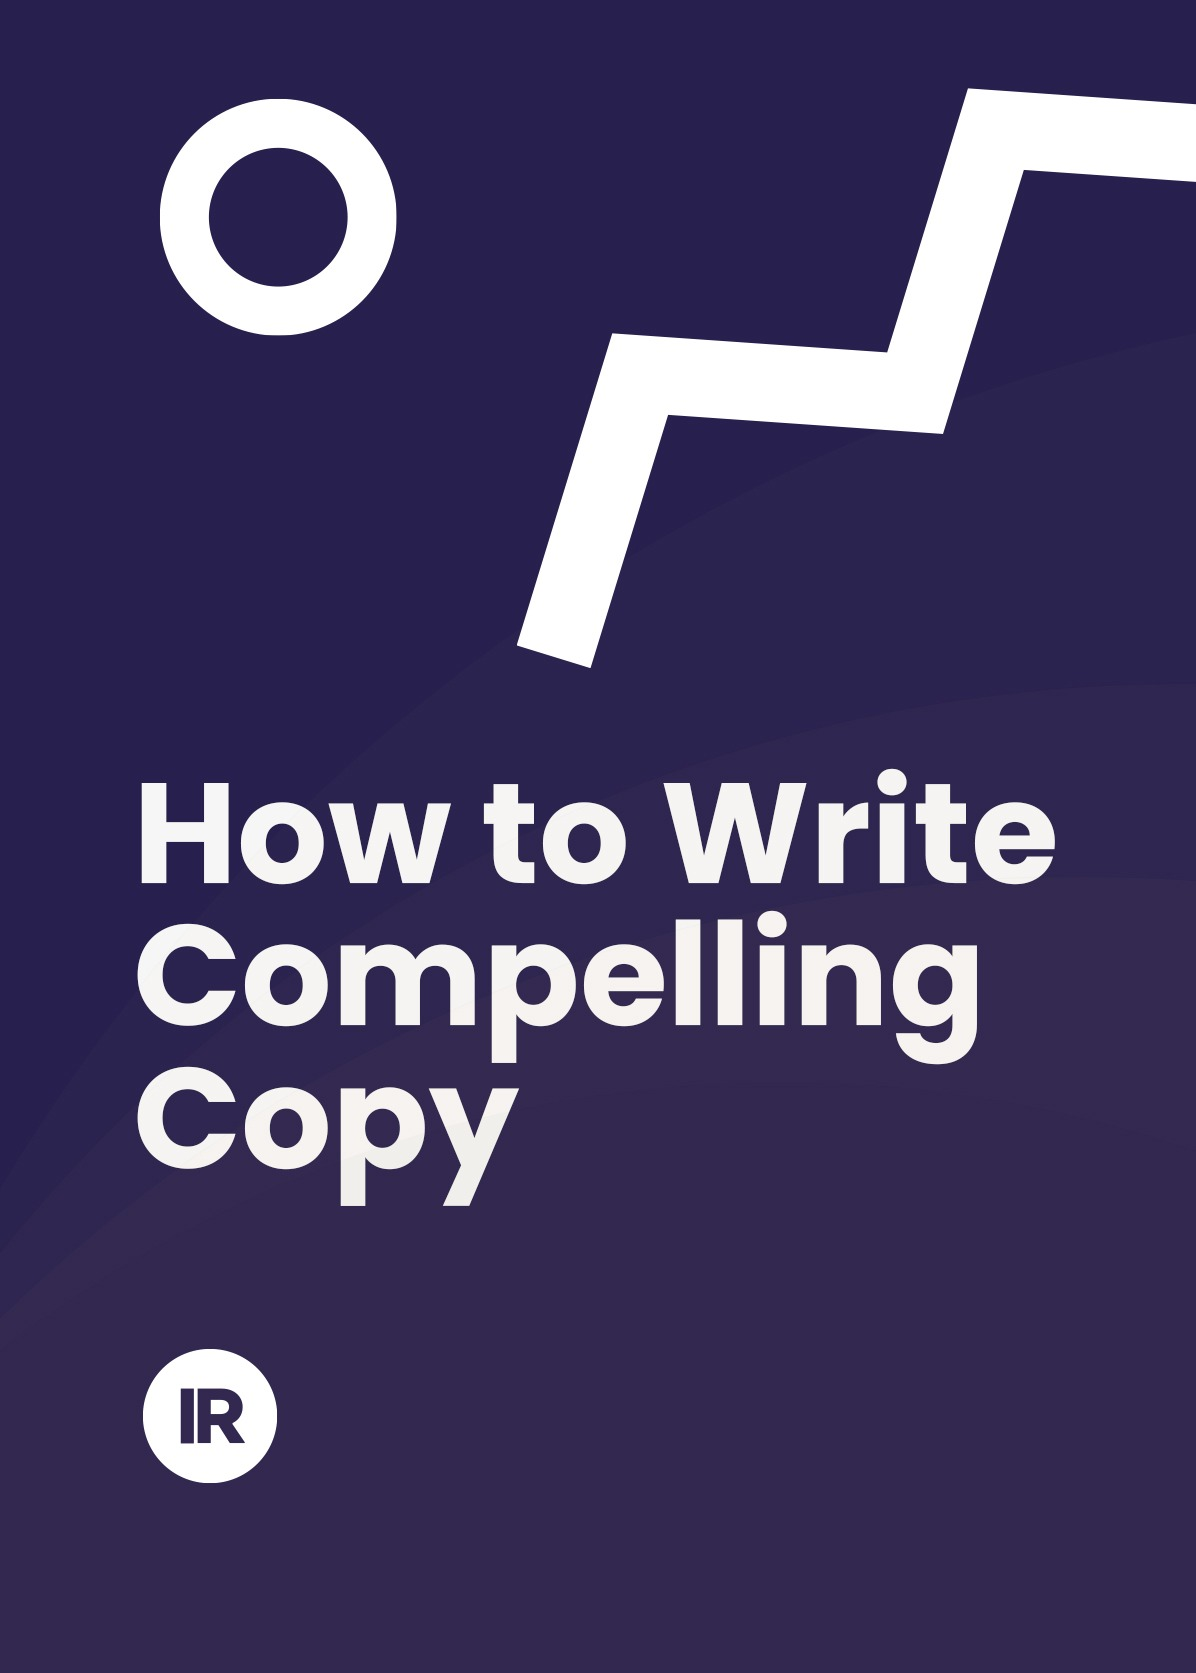 how-to-write-compelling-copy